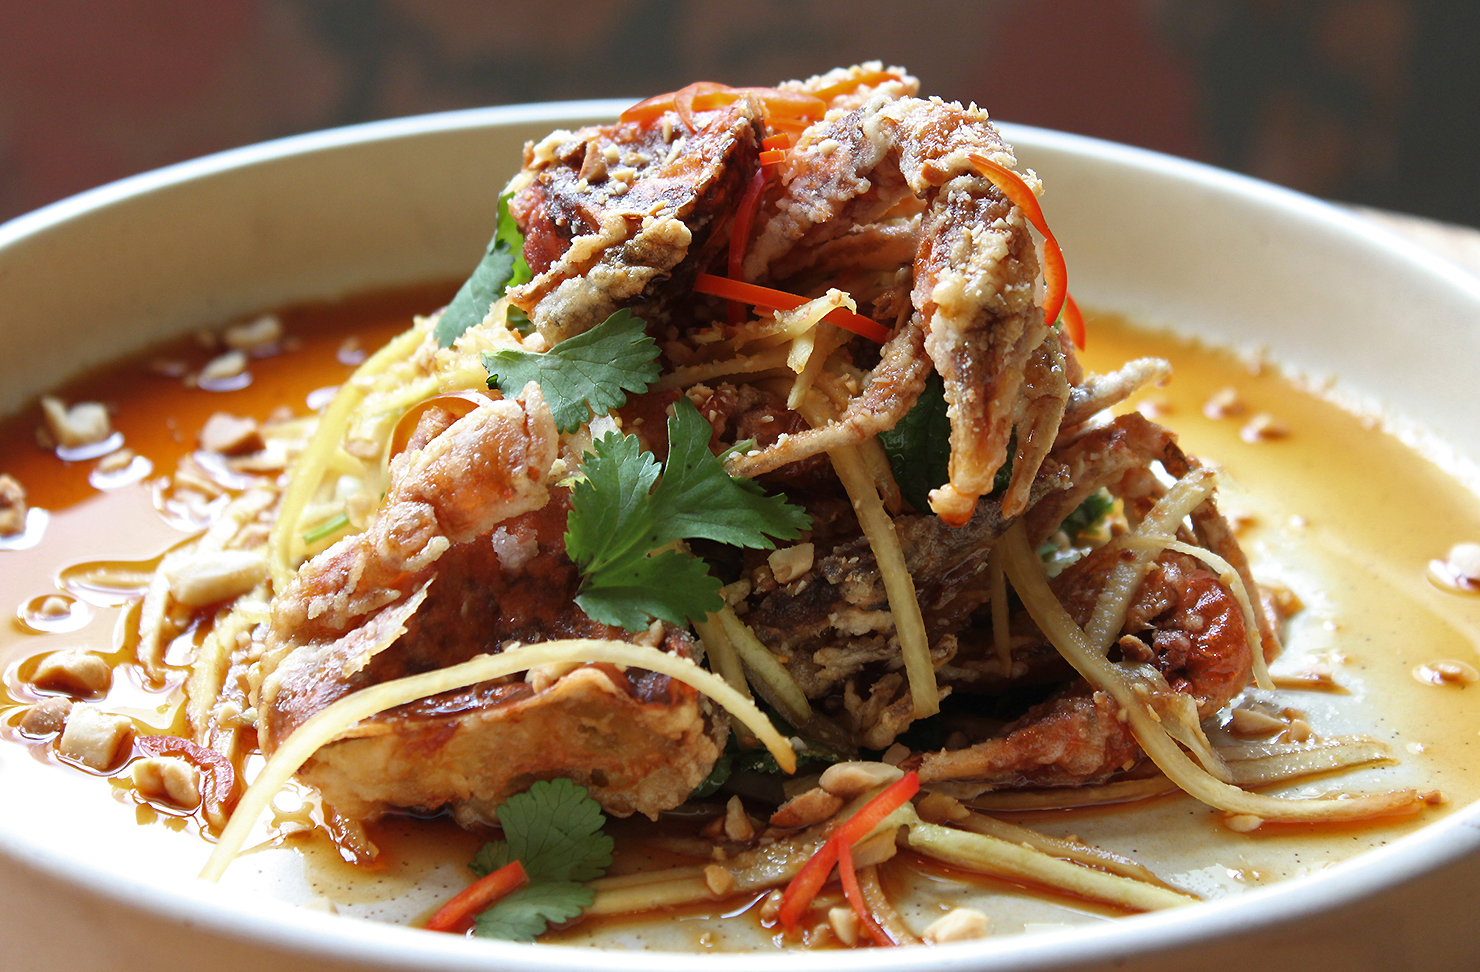 Soft Shell Crab with shredded Kohlrabi sits on a plate looking delicious.